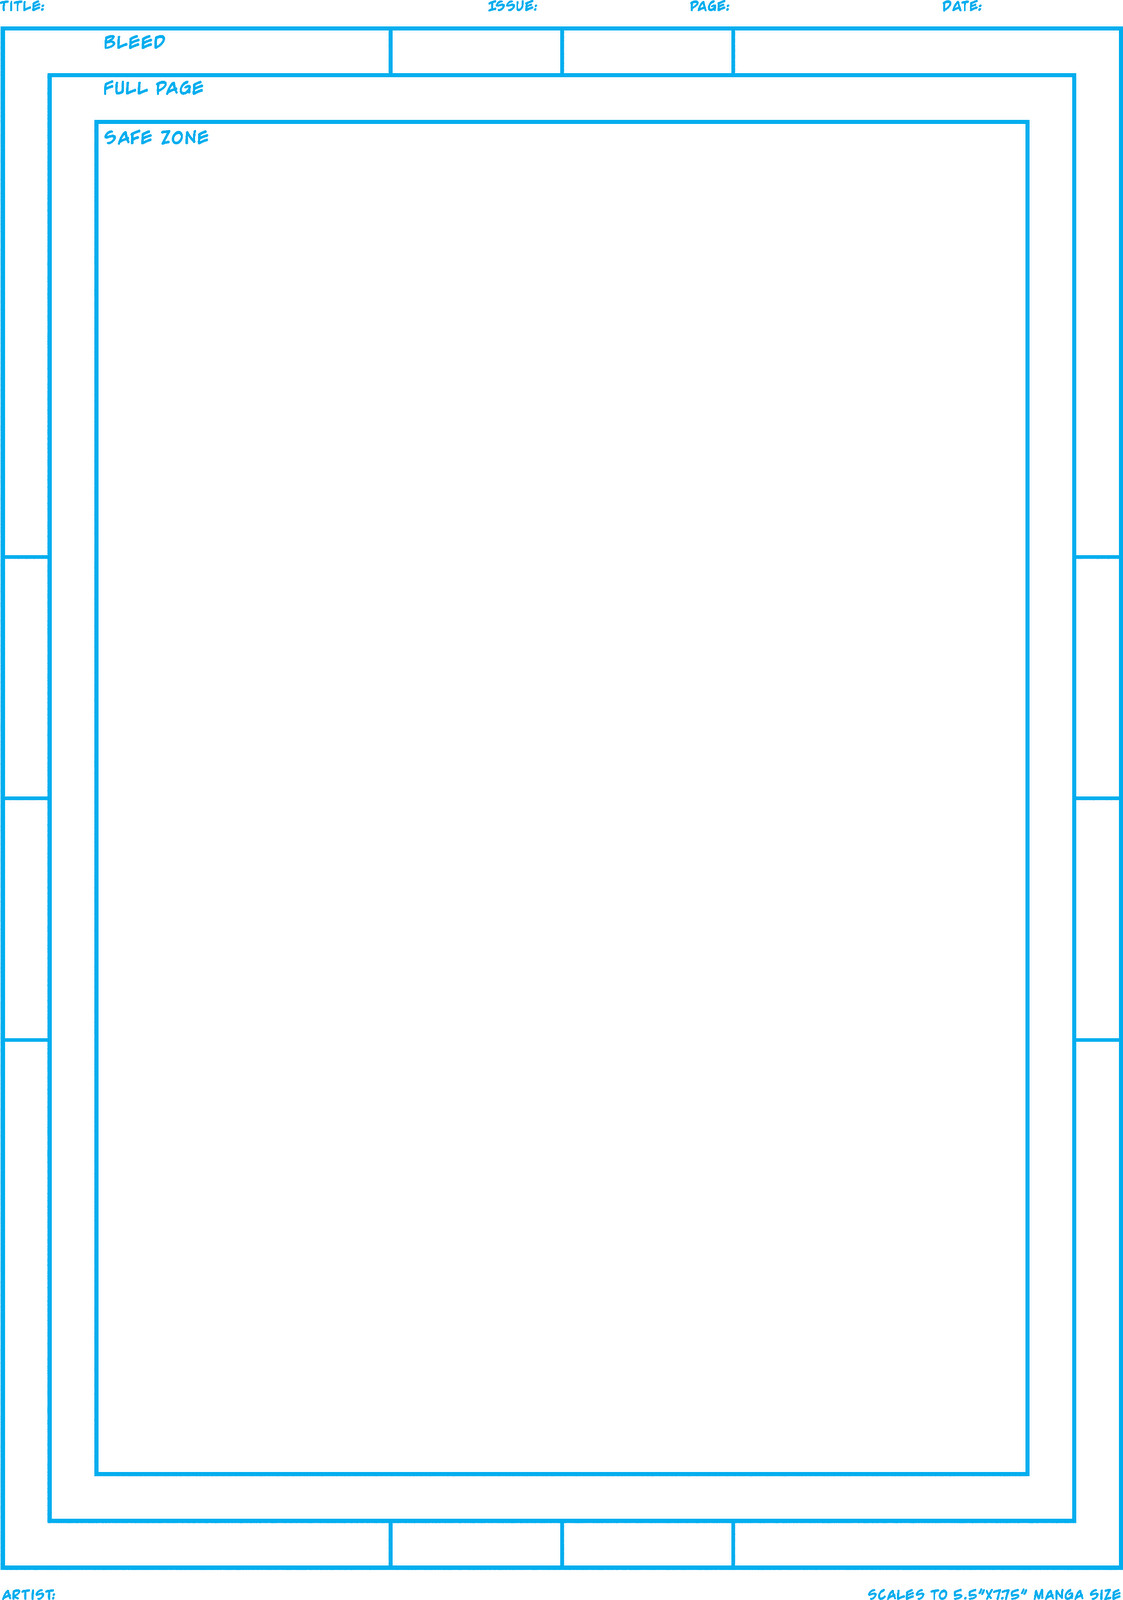 Comic Book Page Template Jesse Acosta S Blog Build Your Own Mini Ic